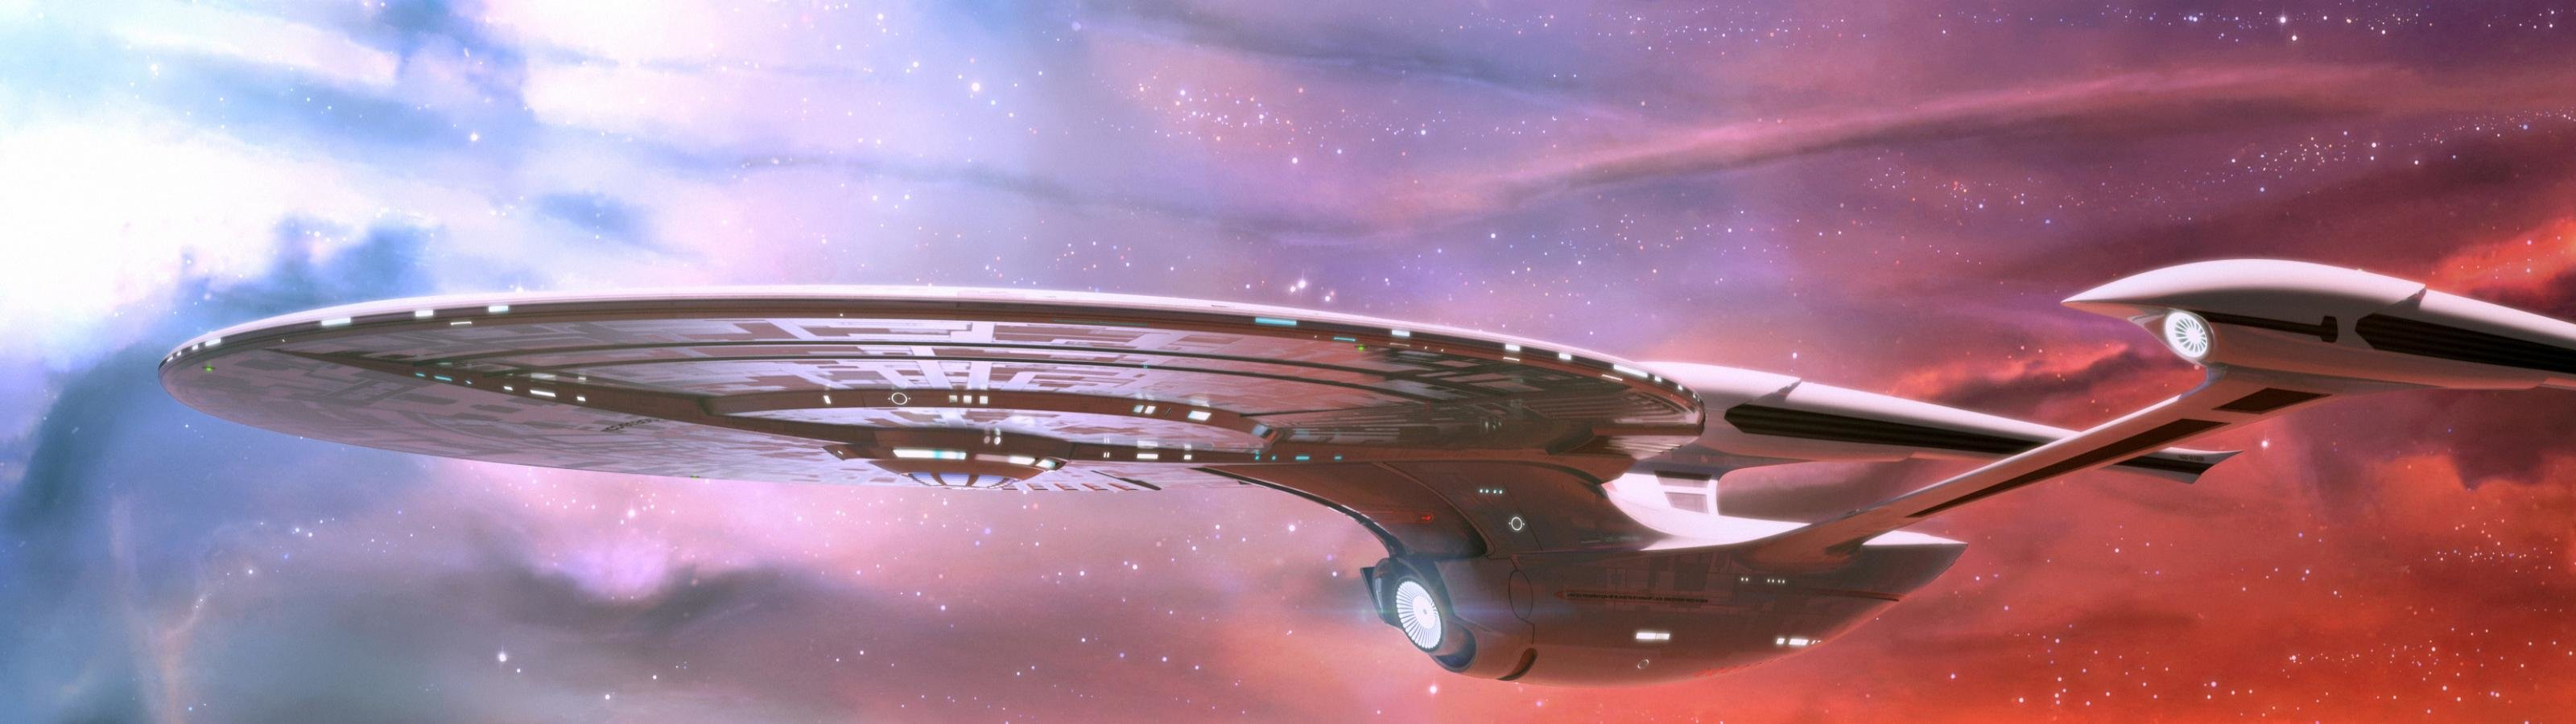 Download dual monitor 3200x900 Star Trek desktop background ID:389061 for free